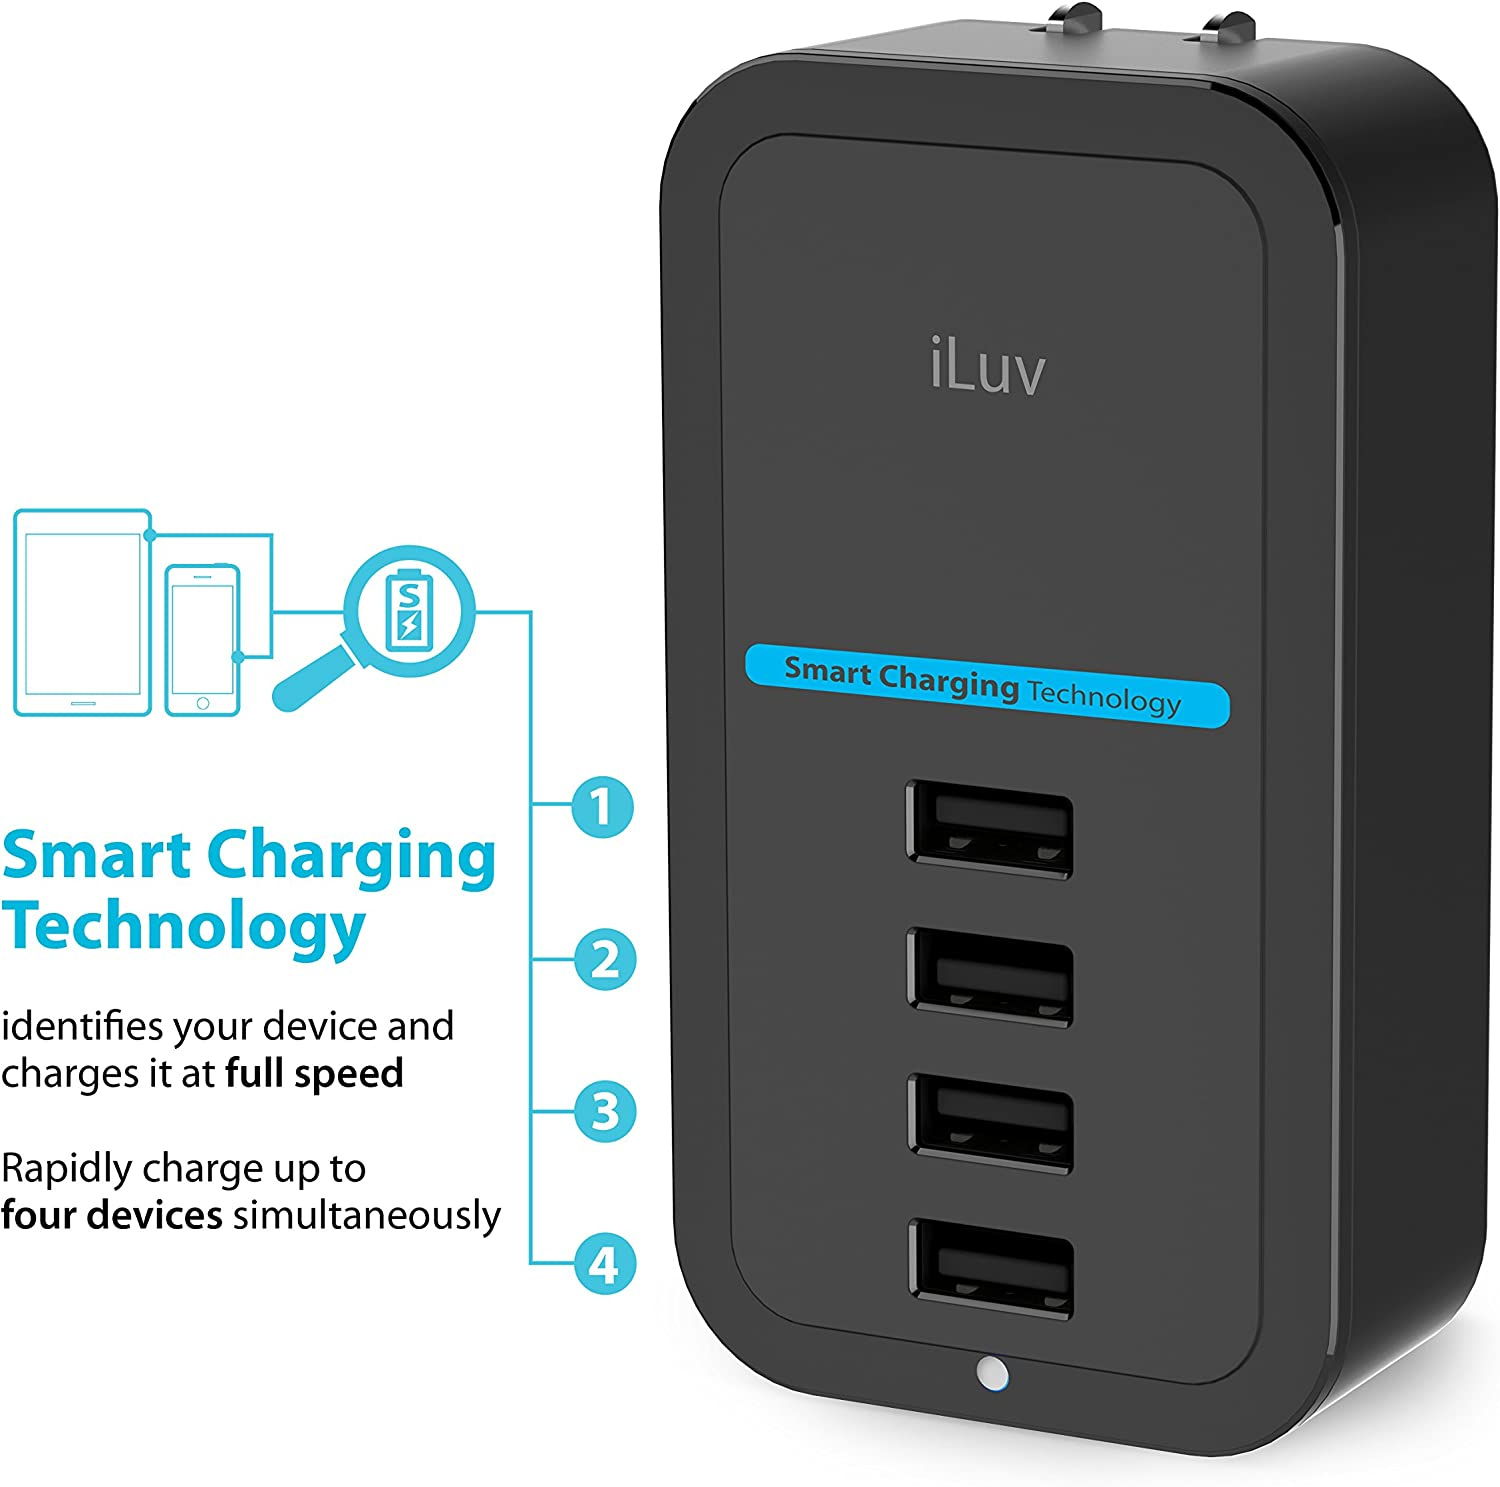 Safety Design iLuv Compact 4 Port USB Wall Charger with Smart Charging Technology Quick Charging and Durability for iPhone Tablets and Other USB Devices iPad Smartphones iPad